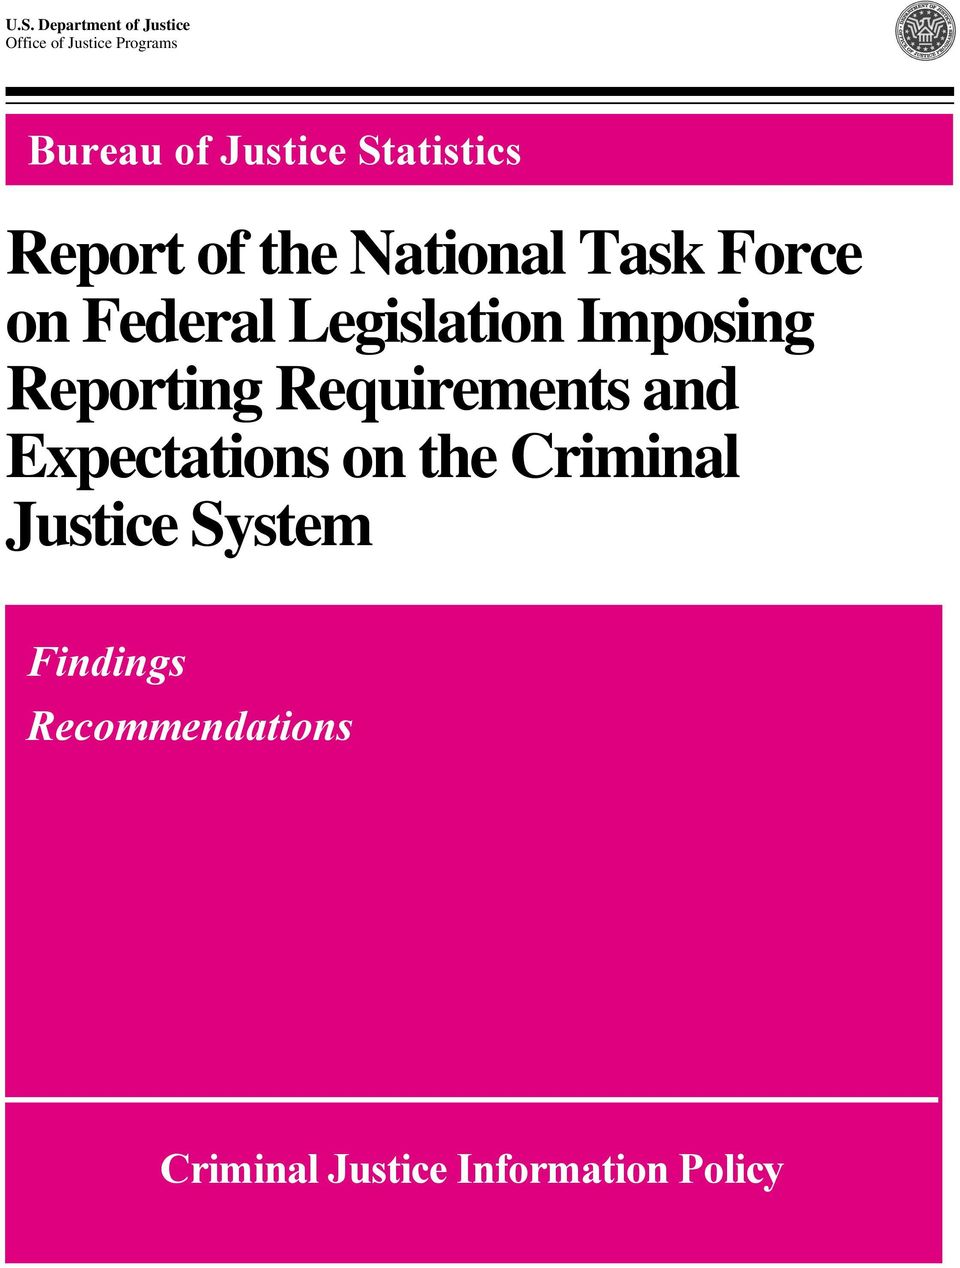 Legislation Imposing Reporting Requirements and Expectations on the